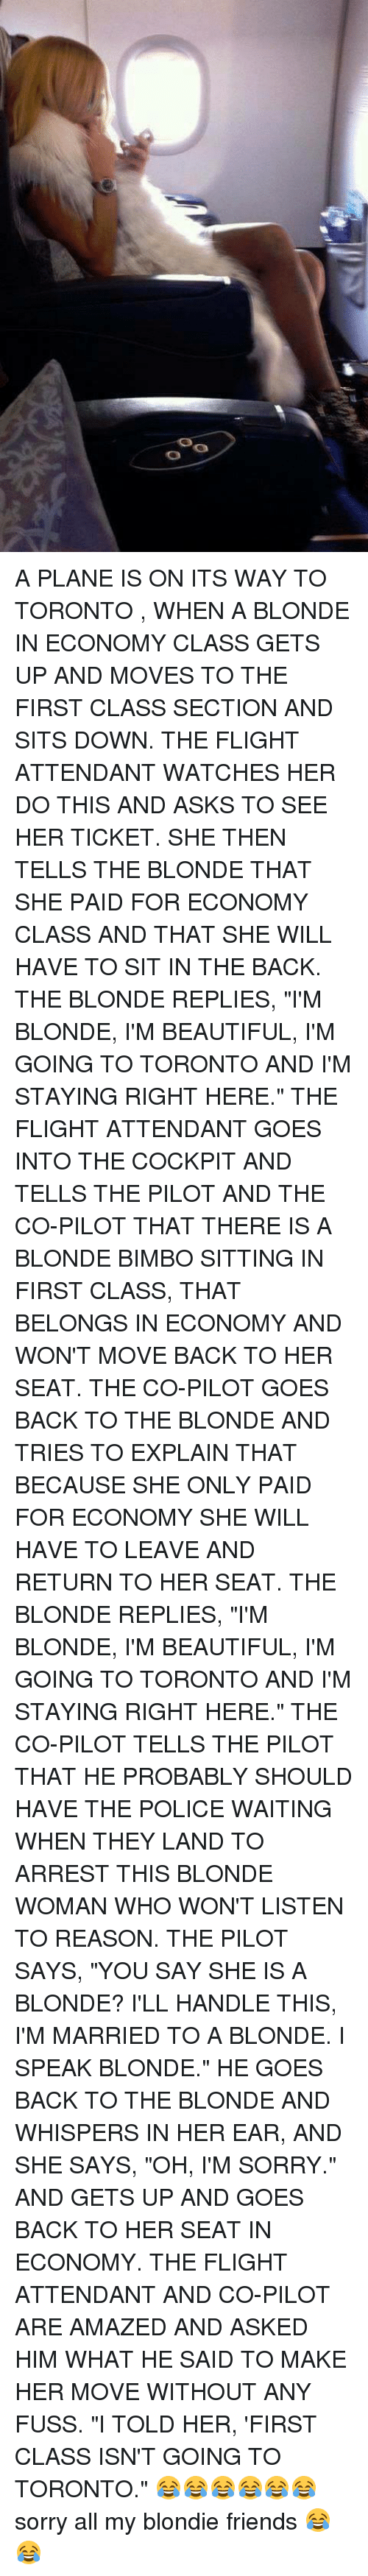 """Beautiful, Friends, and Memes: 0  00 A PLANE IS ON ITS WAY TO TORONTO , WHEN A BLONDE IN ECONOMY CLASS GETS UP AND MOVES TO THE FIRST CLASS SECTION AND SITS DOWN.  THE FLIGHT ATTENDANT WATCHES HER DO THIS AND ASKS TO SEE HER TICKET.  SHE THEN TELLS THE BLONDE THAT SHE PAID FOR ECONOMY CLASS AND THAT SHE WILL HAVE TO SIT IN THE BACK.  THE BLONDE REPLIES, """"I'M BLONDE, I'M BEAUTIFUL, I'M GOING TO TORONTO AND I'M STAYING RIGHT HERE.""""  THE FLIGHT ATTENDANT GOES INTO THE COCKPIT AND TELLS THE PILOT AND THE CO-PILOT THAT THERE IS A BLONDE BIMBO SITTING IN FIRST CLASS, THAT BELONGS IN ECONOMY AND WON'T MOVE BACK TO HER SEAT.  THE CO-PILOT GOES BACK TO THE BLONDE AND TRIES TO EXPLAIN THAT BECAUSE SHE ONLY PAID FOR ECONOMY SHE WILL HAVE TO LEAVE AND RETURN TO HER SEAT.  THE BLONDE REPLIES, """"I'M BLONDE, I'M BEAUTIFUL, I'M GOING TO TORONTO AND I'M STAYING RIGHT HERE.""""  THE CO-PILOT TELLS THE PILOT THAT HE PROBABLY SHOULD HAVE THE POLICE WAITING WHEN THEY LAND TO ARREST THIS BLONDE WOMAN WHO WON'T LISTEN TO REASON.  THE PILOT SAYS, """"YOU SAY SHE IS A BLONDE? I'LL HANDLE THIS, I'M MARRIED TO A BLONDE. I SPEAK BLONDE.""""  HE GOES BACK TO THE BLONDE AND WHISPERS IN HER EAR, AND SHE SAYS, """"OH, I'M SORRY."""" AND GETS UP AND GOES BACK TO HER SEAT IN ECONOMY.  THE FLIGHT ATTENDANT AND CO-PILOT ARE AMAZED AND ASKED HIM WHAT HE SAID TO MAKE HER MOVE WITHOUT ANY FUSS.  """"I TOLD HER, 'FIRST CLASS ISN'T GOING TO TORONTO."""" 😂😂😂😂😂😂 sorry all my blondie friends 😂😂"""